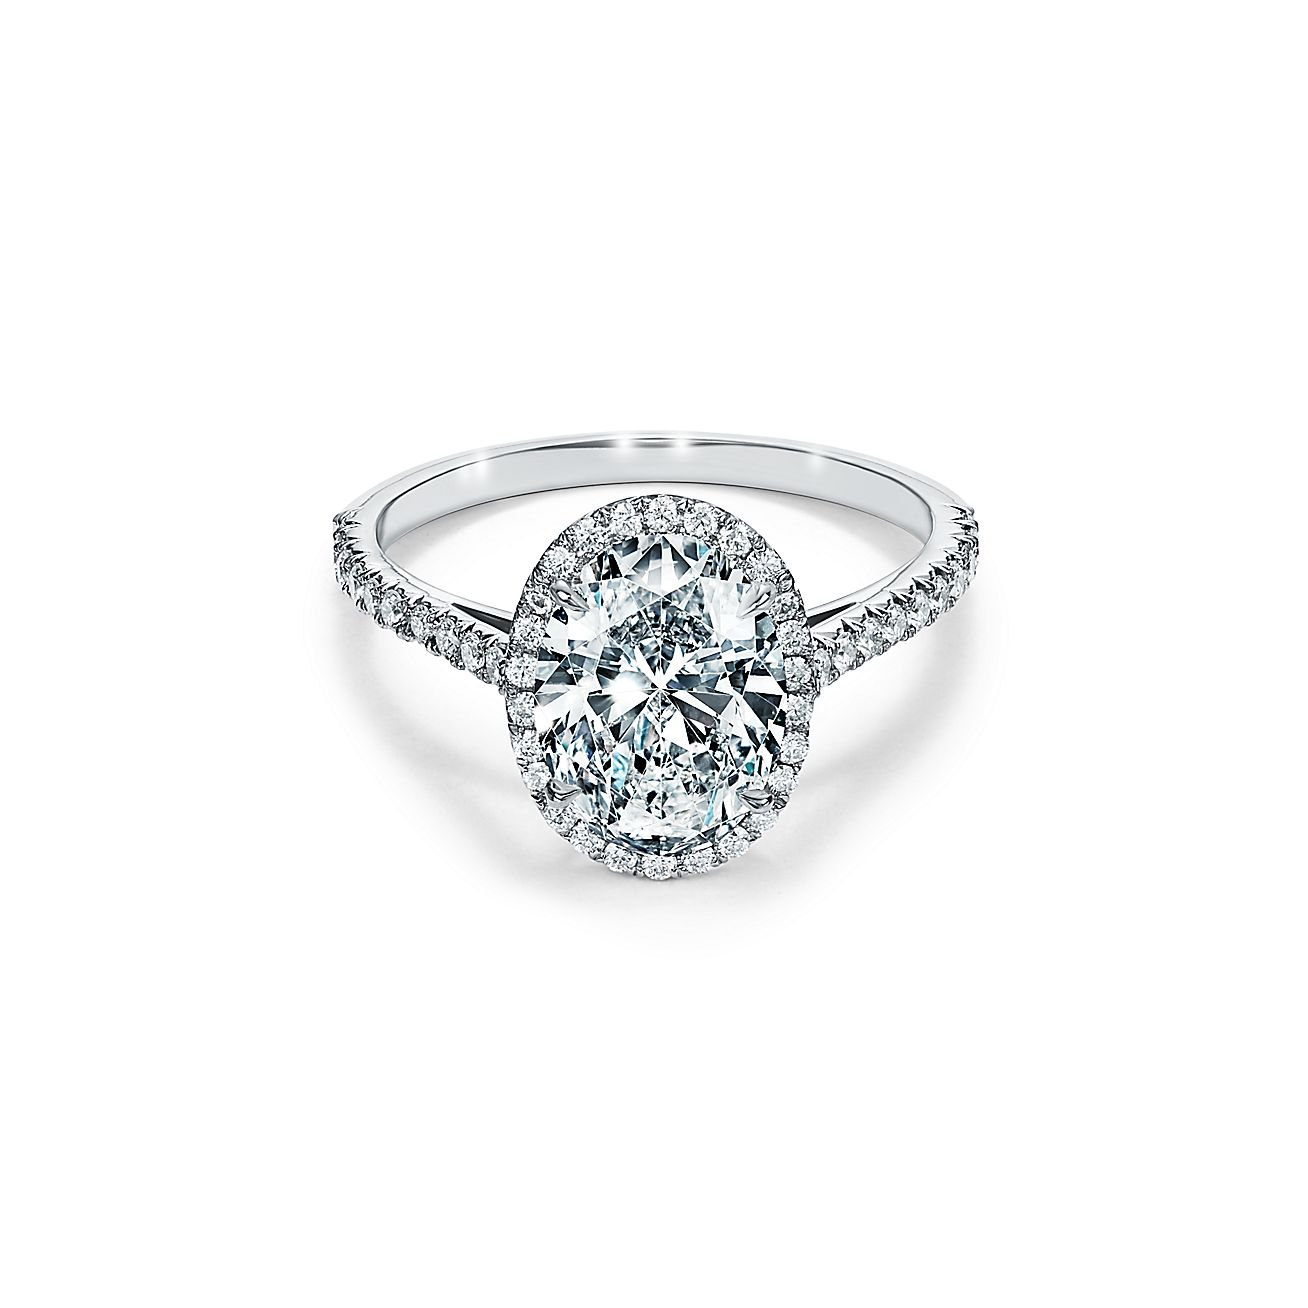 Tiffany Soleste Oval Halo Engagement Ring With A Diamond